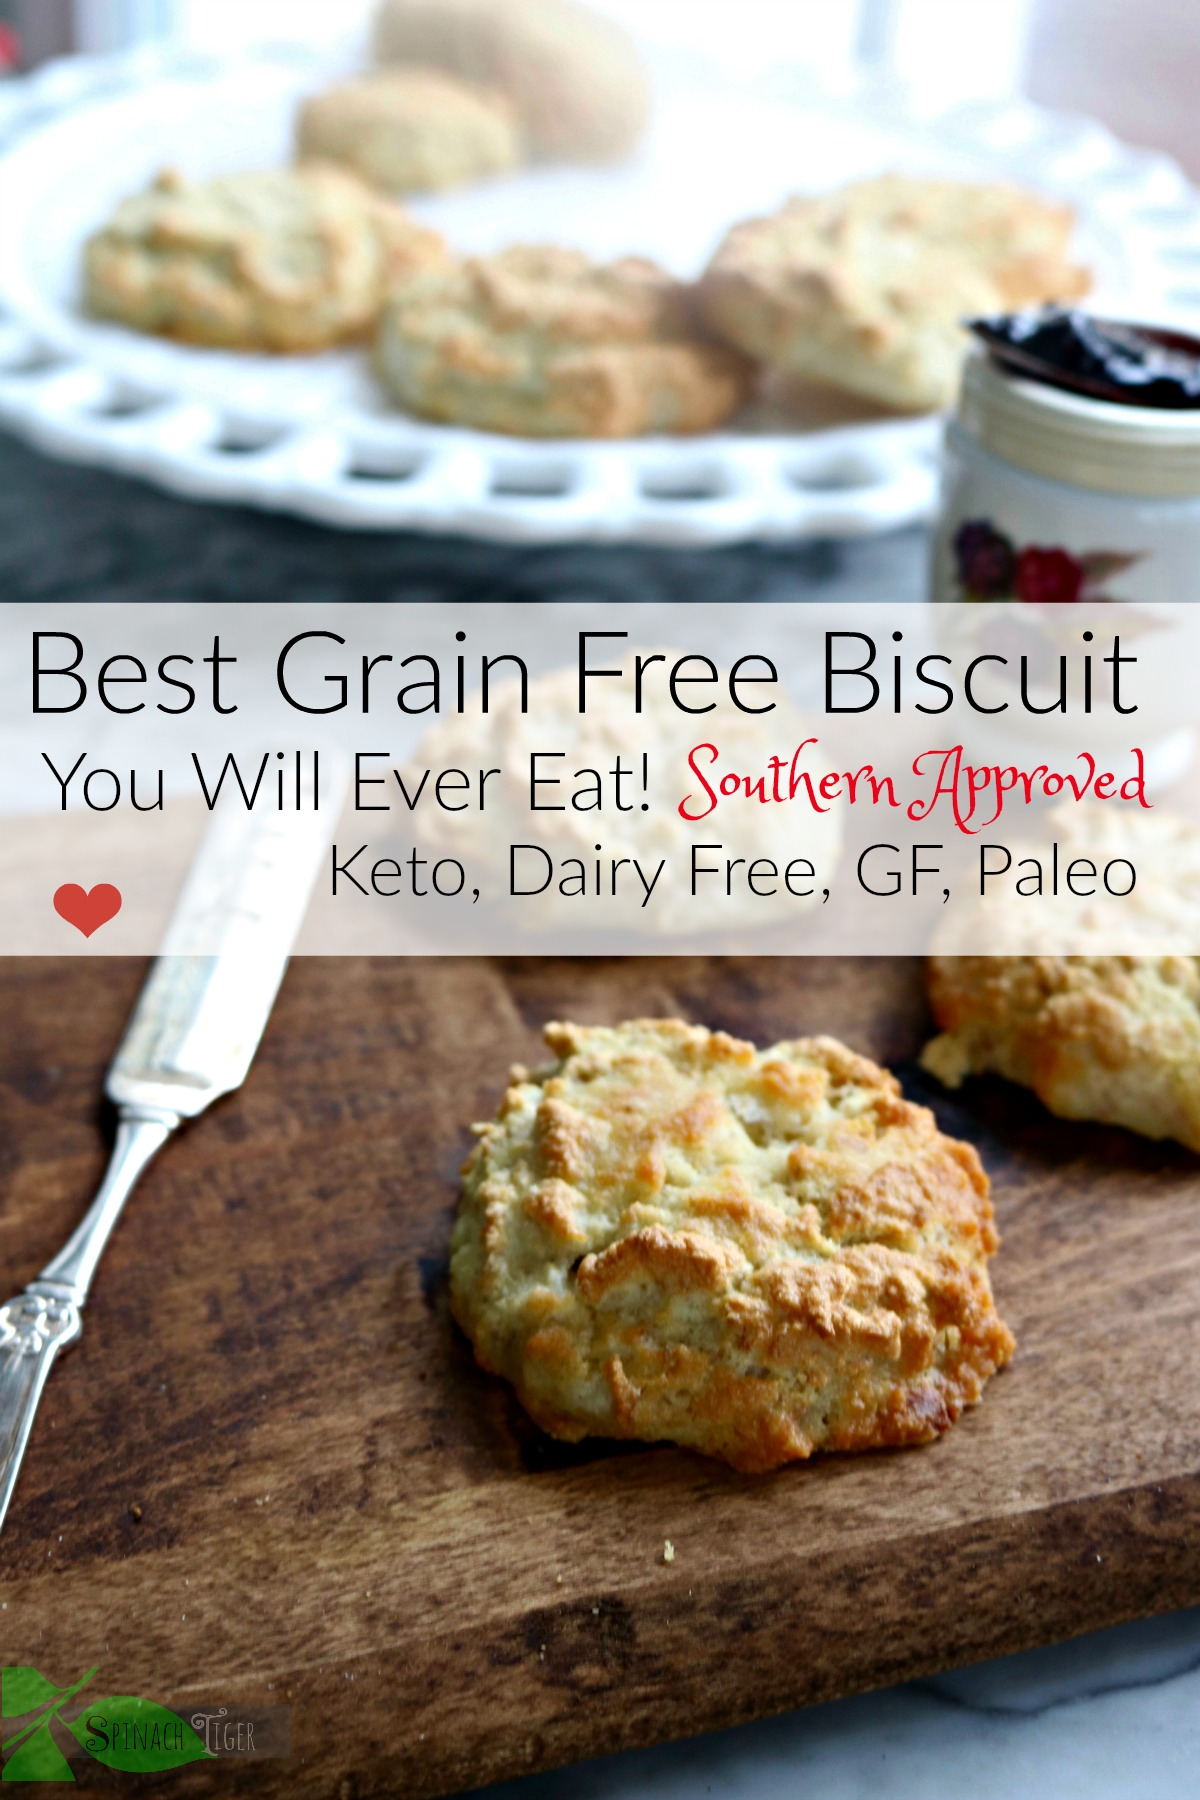 Grain Free Biscuits and Holiday Side Dishes from Spinach Tiger